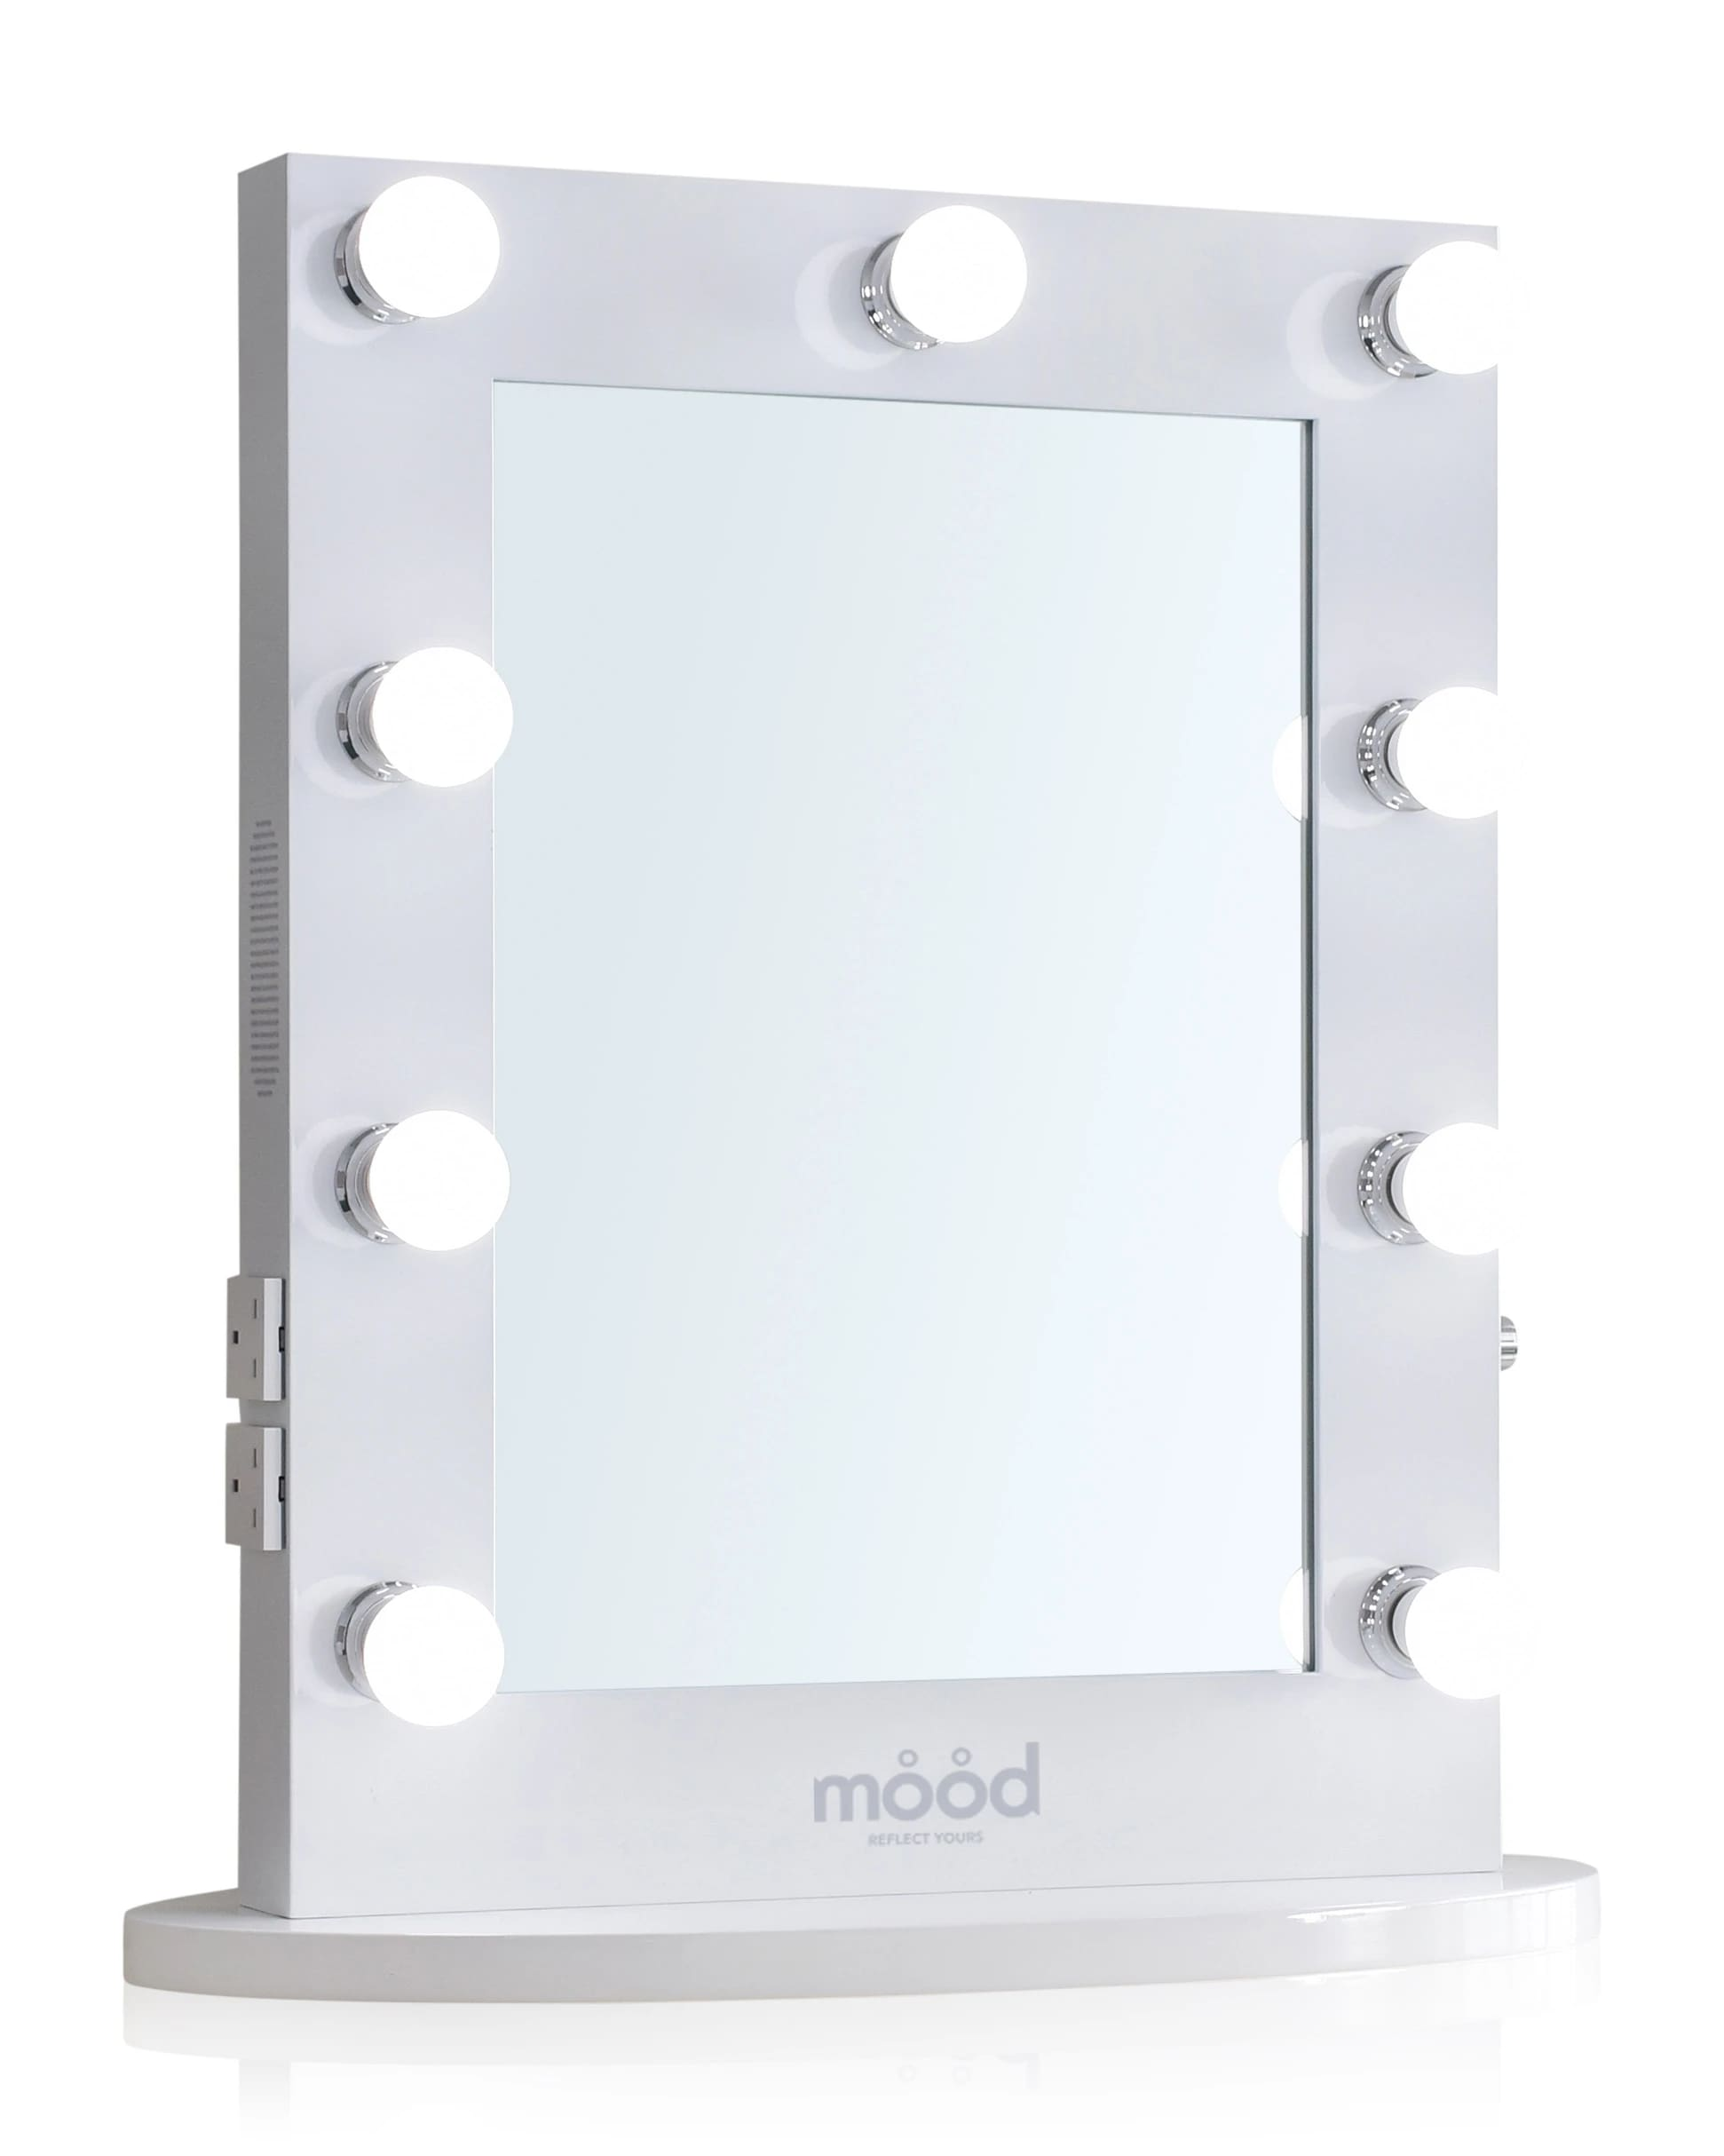 Hollywood Mirror - Mood Living